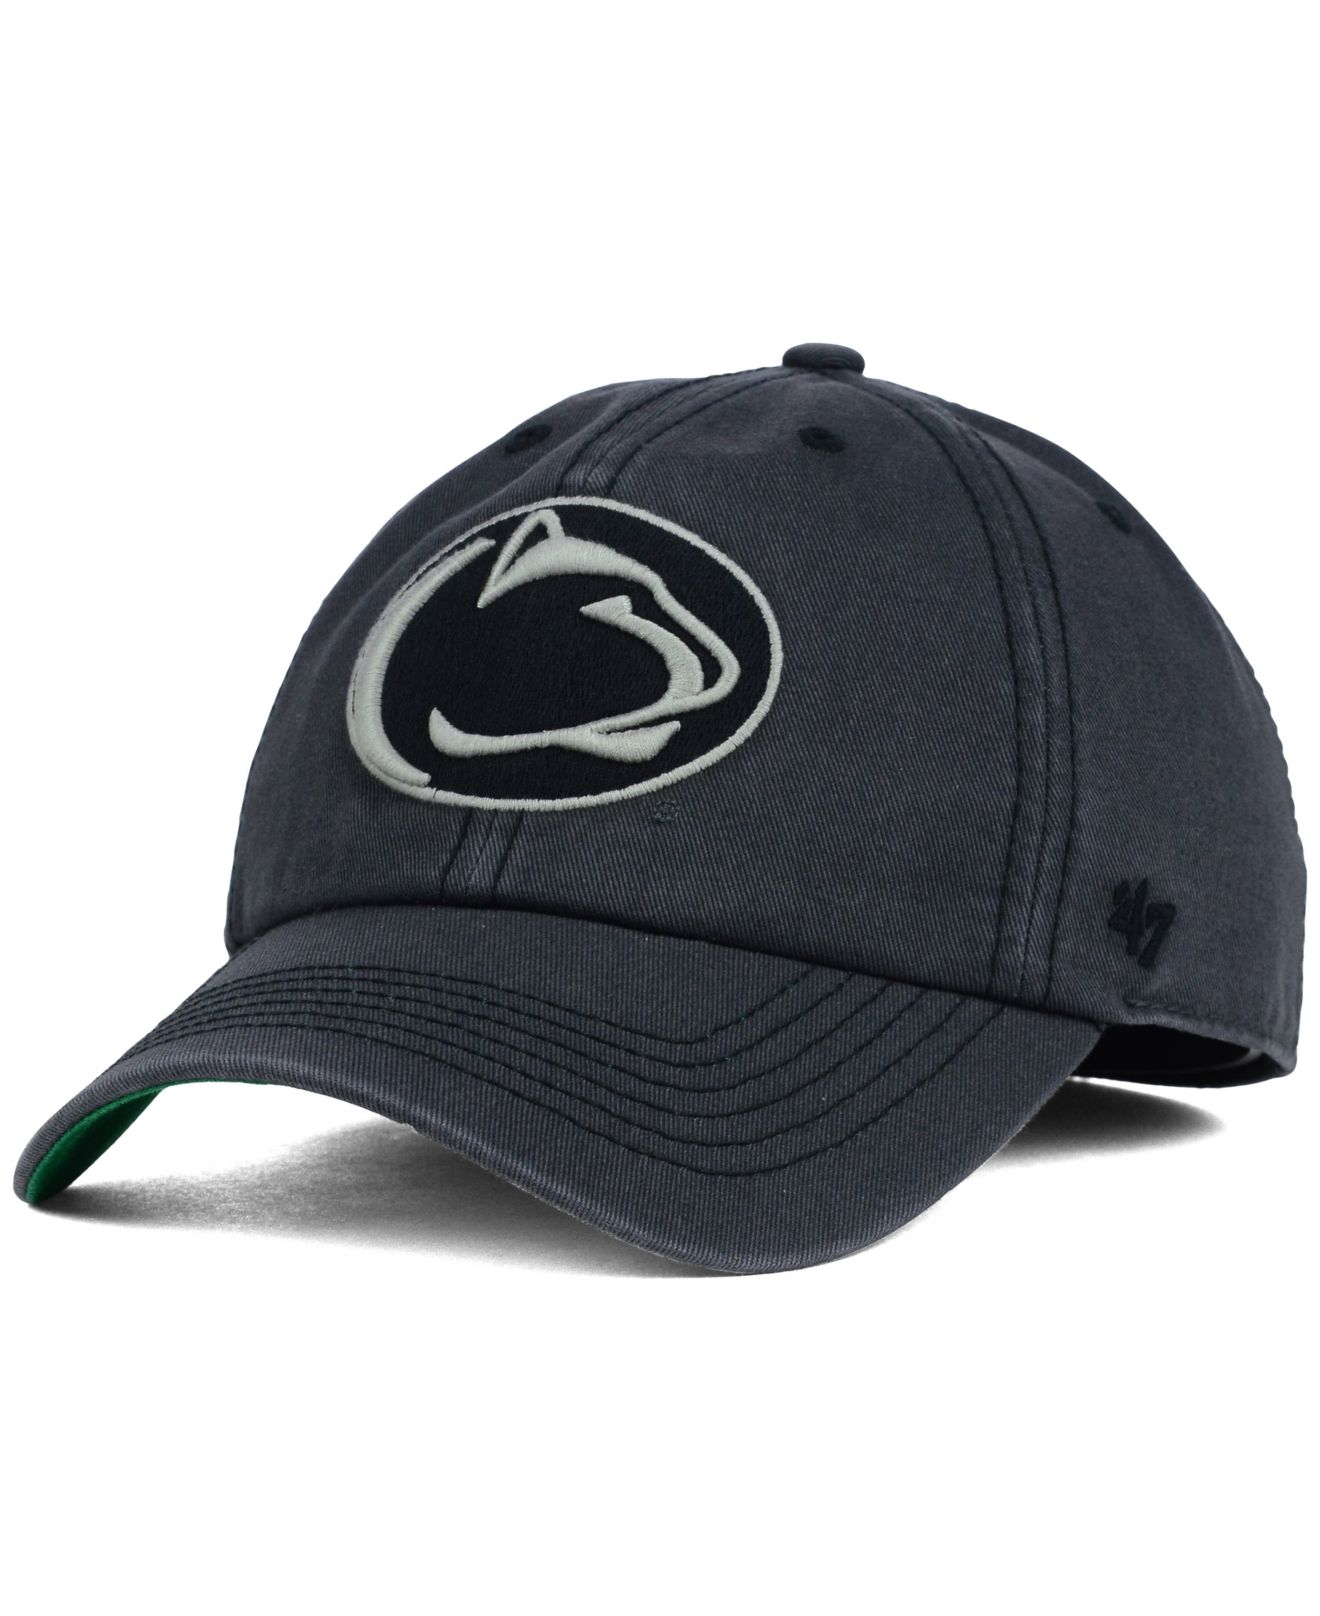 3a421990 ... movement franchise cap in a37c6 5d05e; coupon for lyst 47 brand penn  state nittany lions sachem cap in gray for men 4b89f